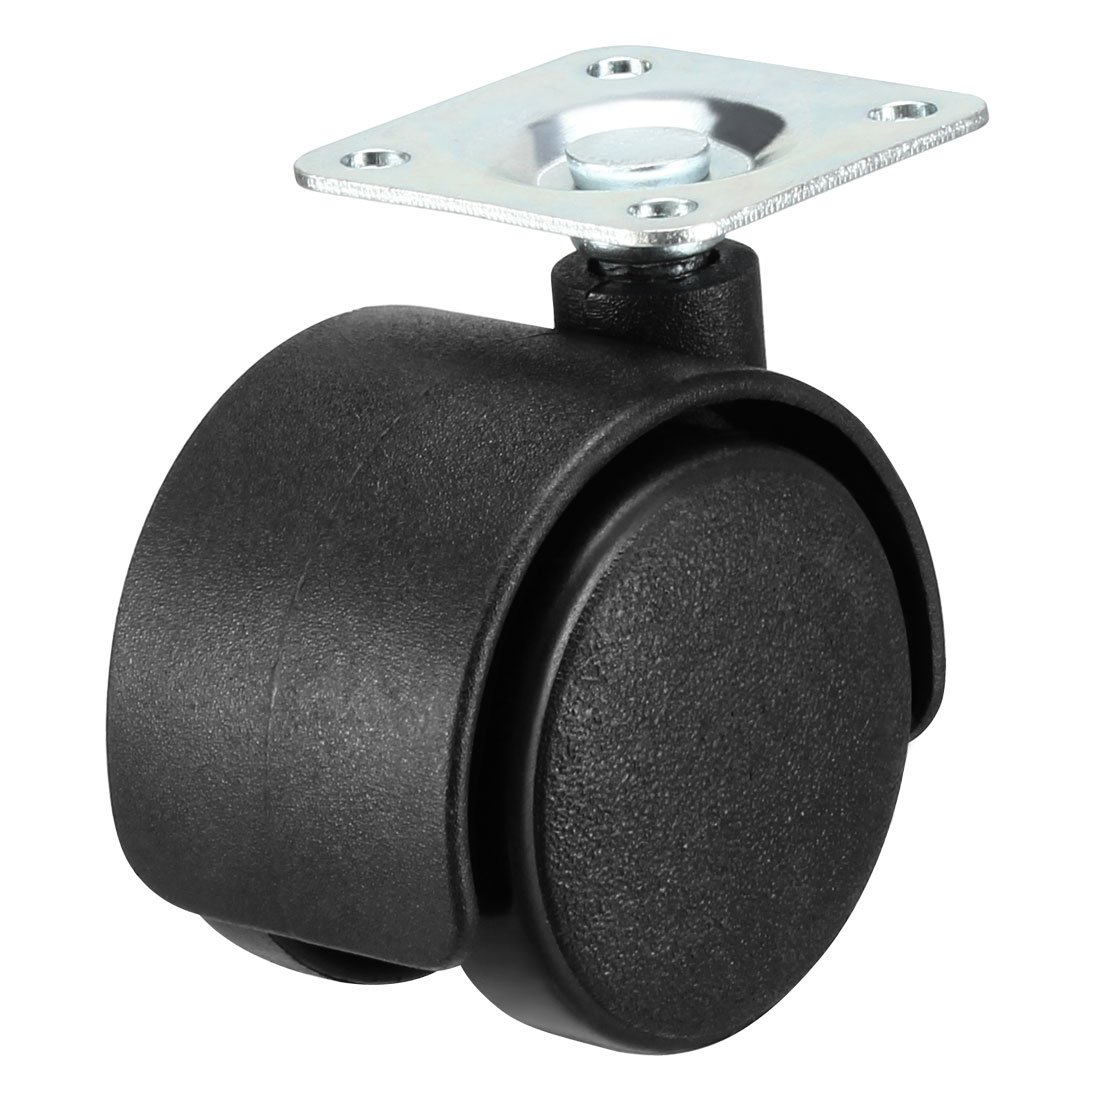 uxcell Swivel Caster Wheels 1.5 Inch Nylon 360 Degree Rotate Top Plate Mounting Furniture Caster Twin Wheel Black 4 Pcs